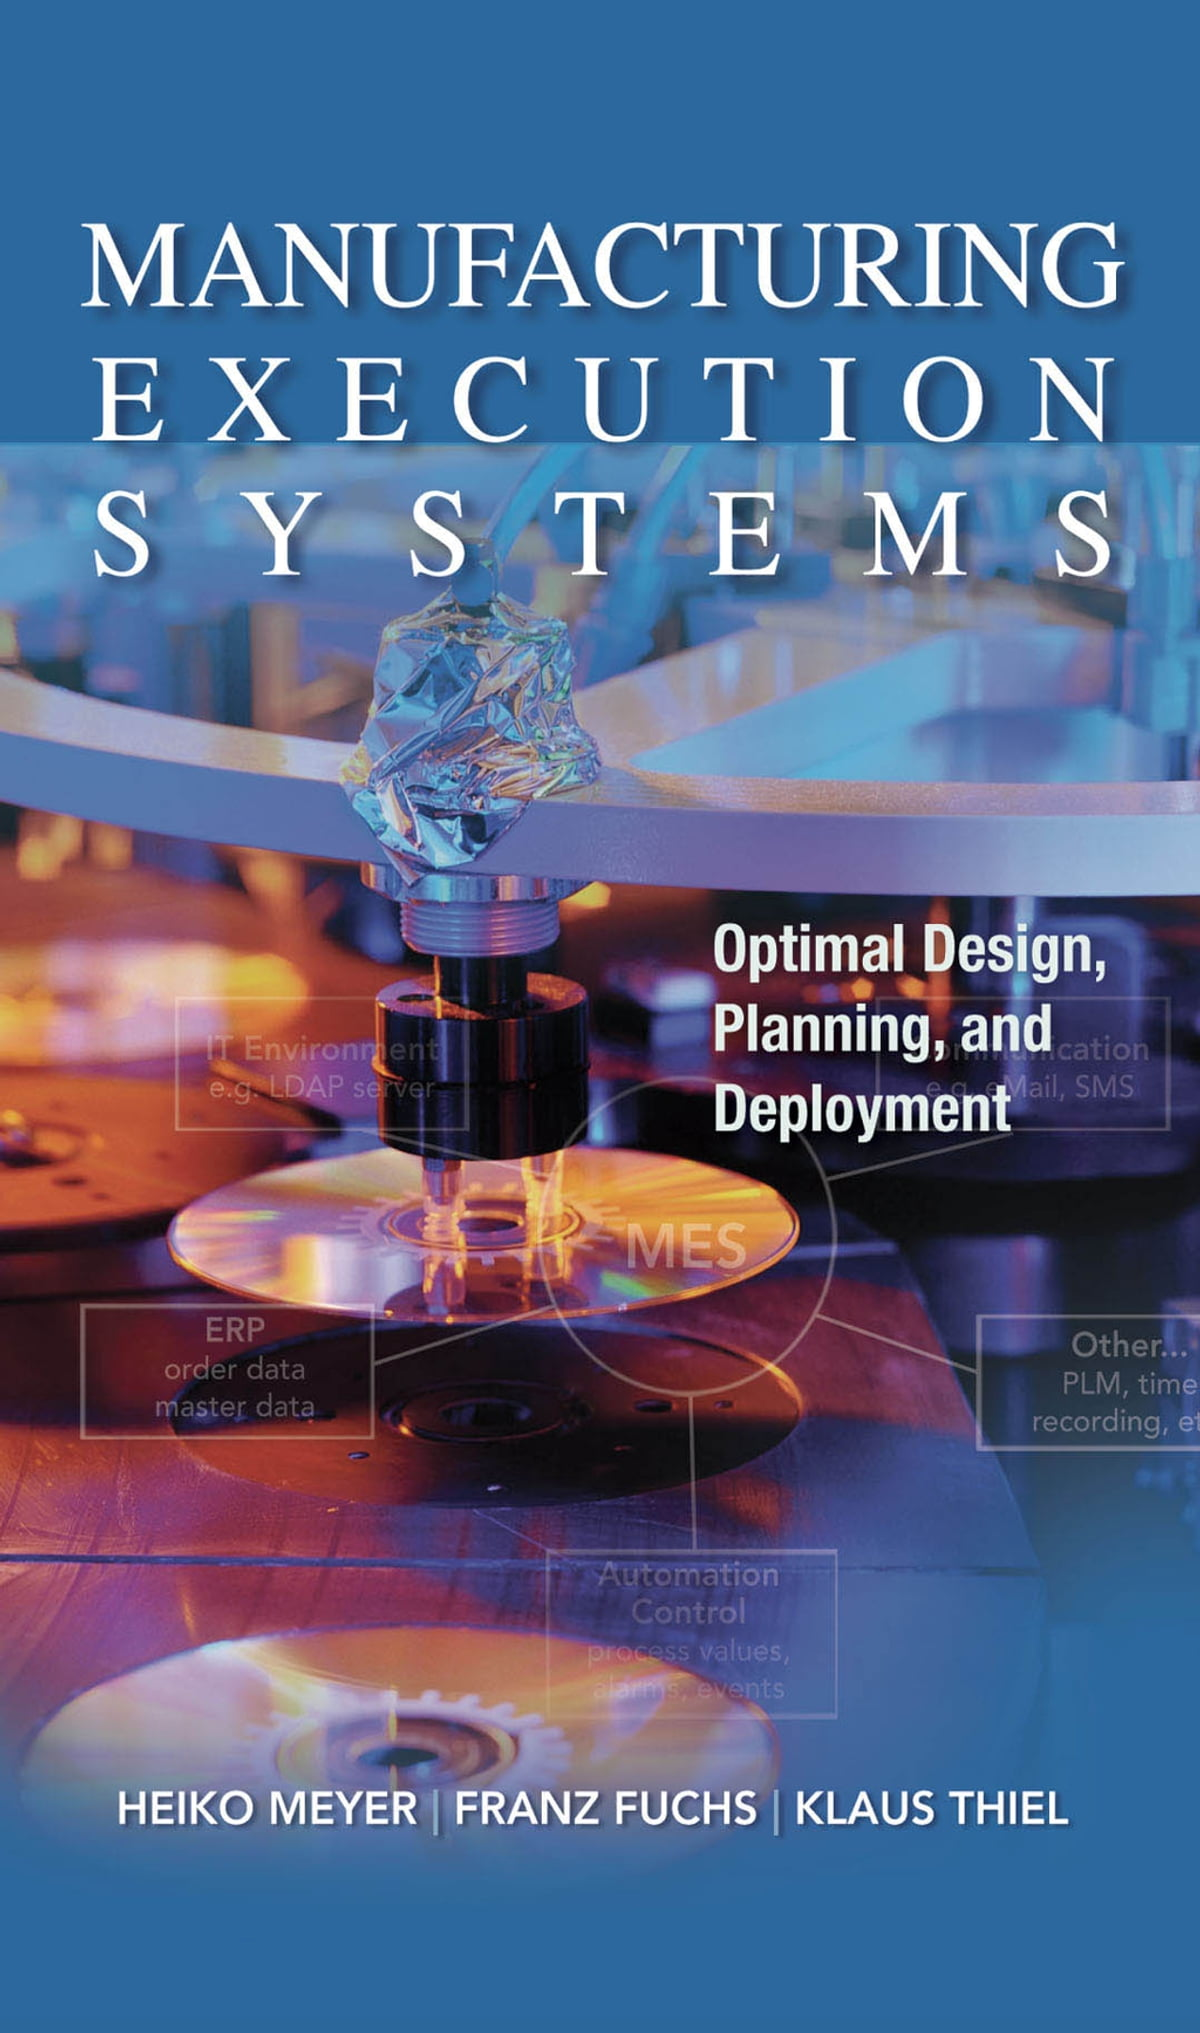 Manufacturing Execution Systems (MES): Optimal Design, Planning, and  Deployment eBook by Franz Fuchs - 9780071626026 | Rakuten Kobo